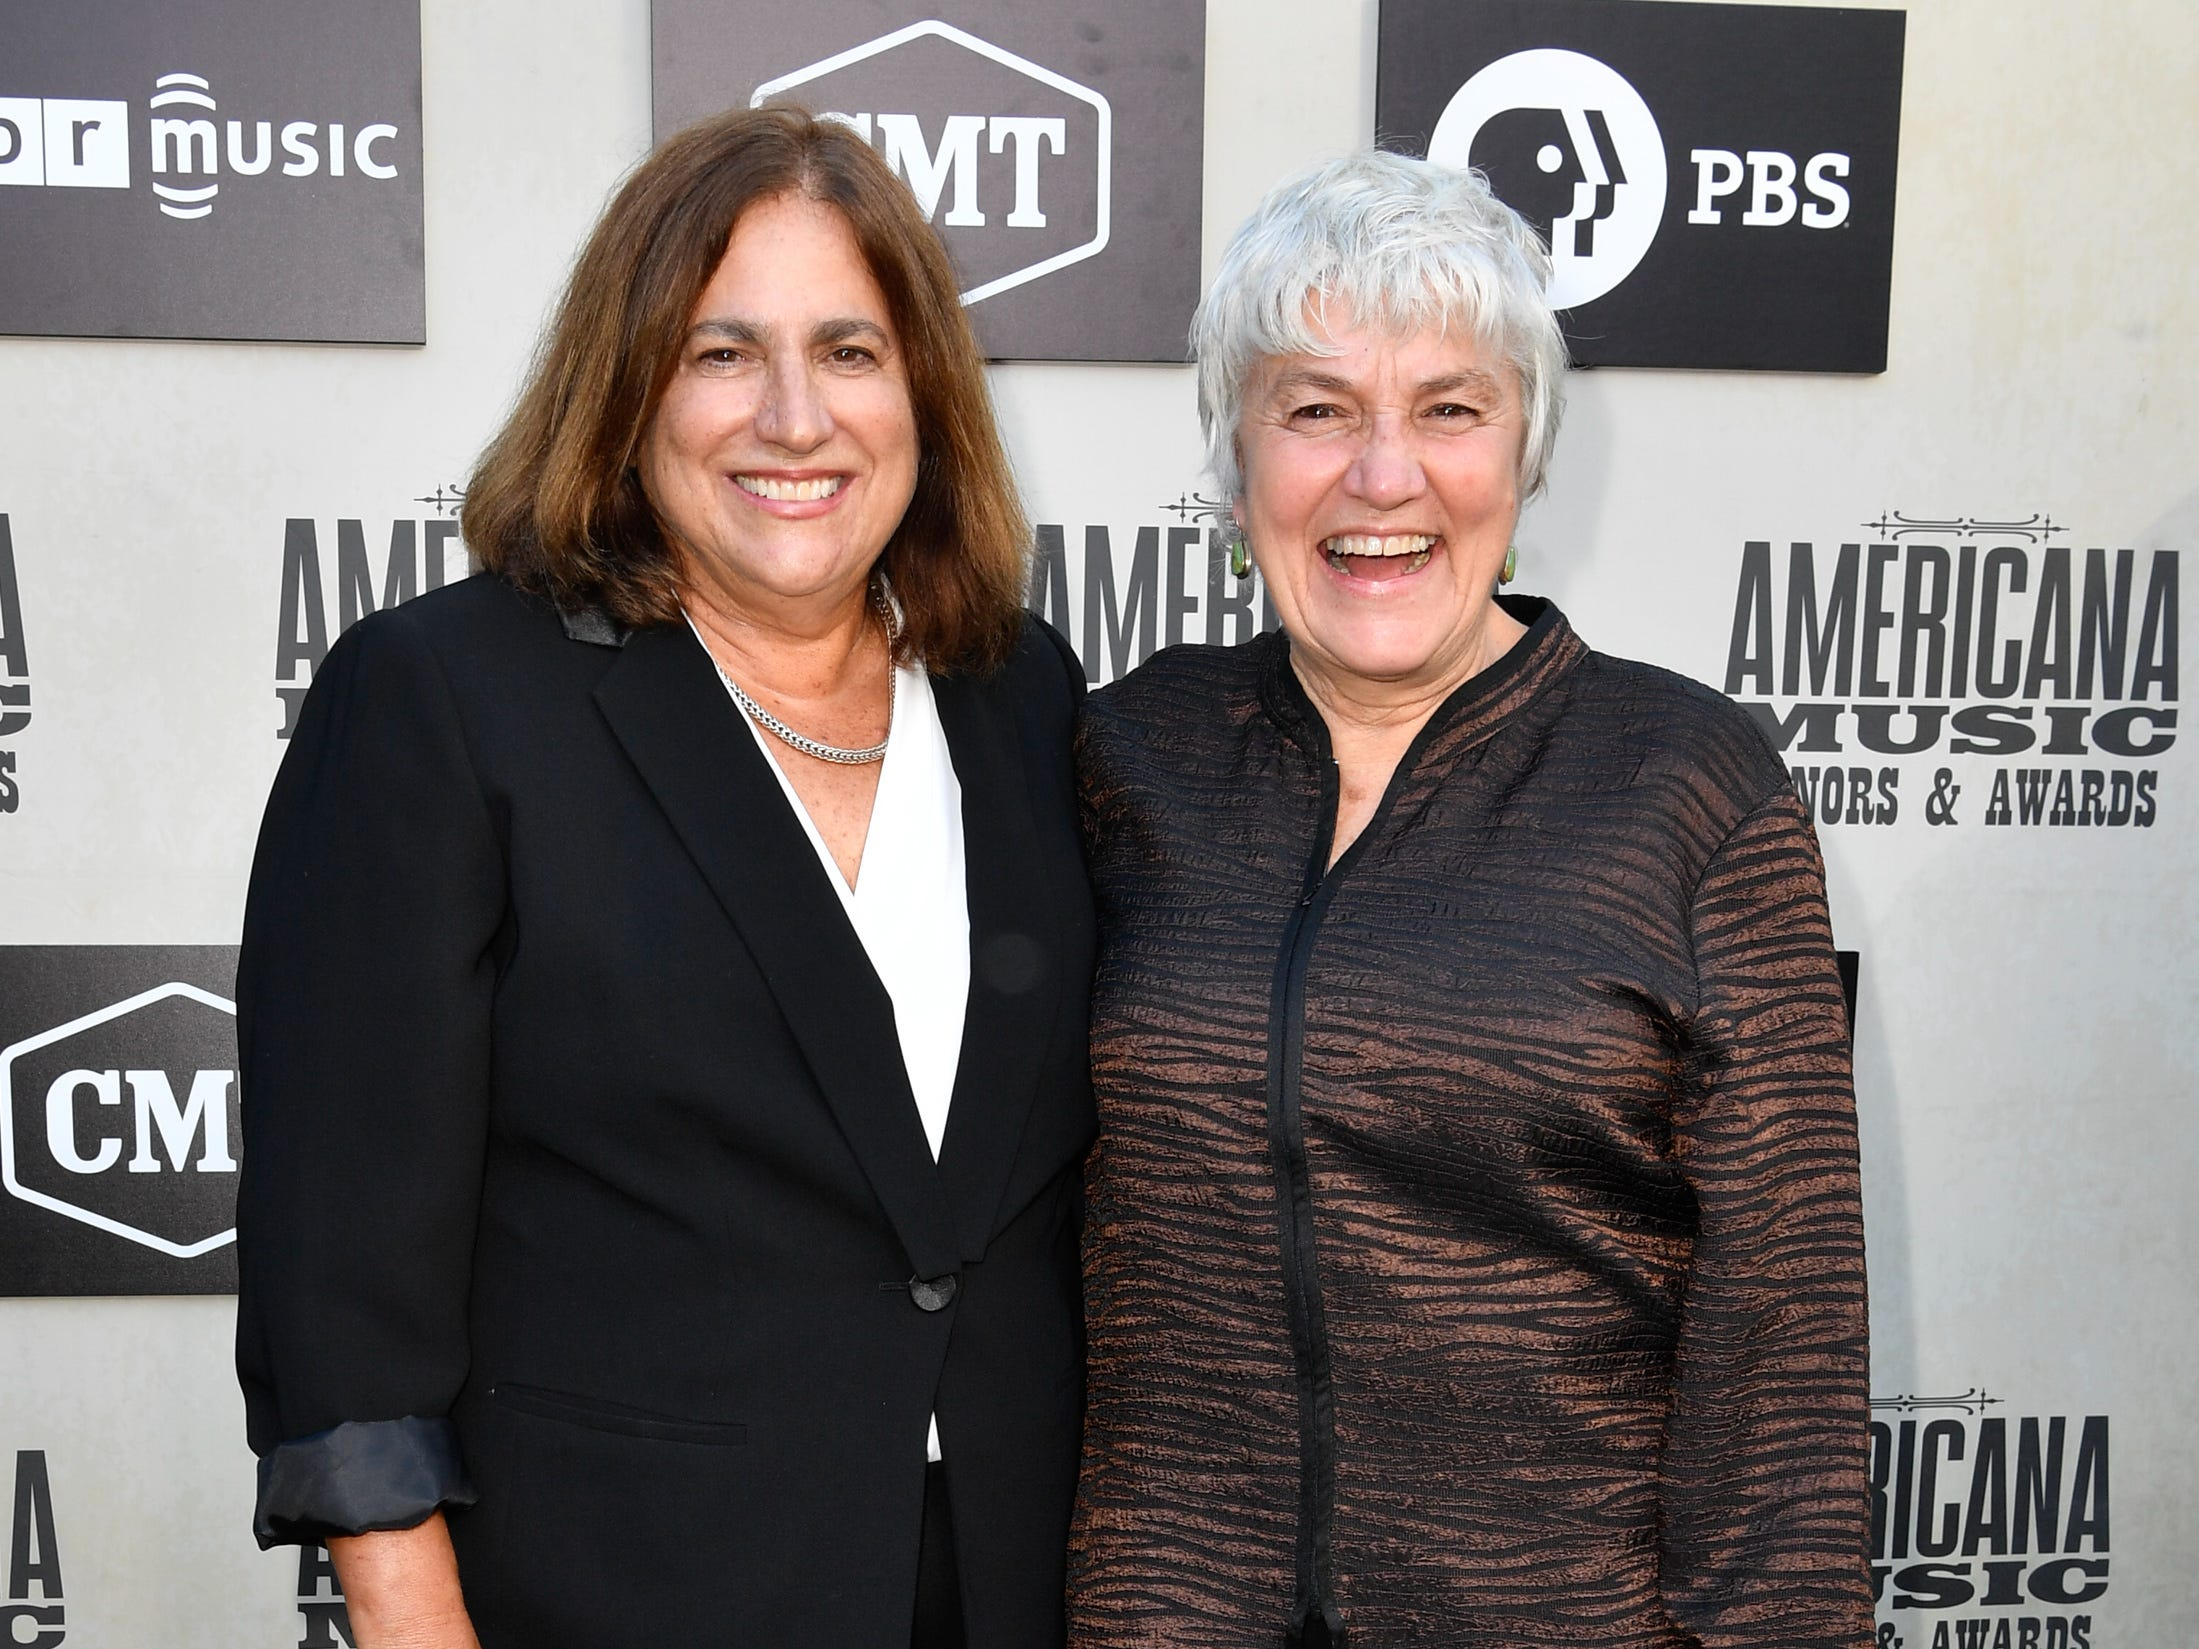 Judy Dlugacz, left, and Cris Williamson, right pose on the red carpet before the 2018 Americana Honors and Awards show at the Ryman Auditorium in Nashville, Tenn., Wednesday, Sept. 12, 2018.